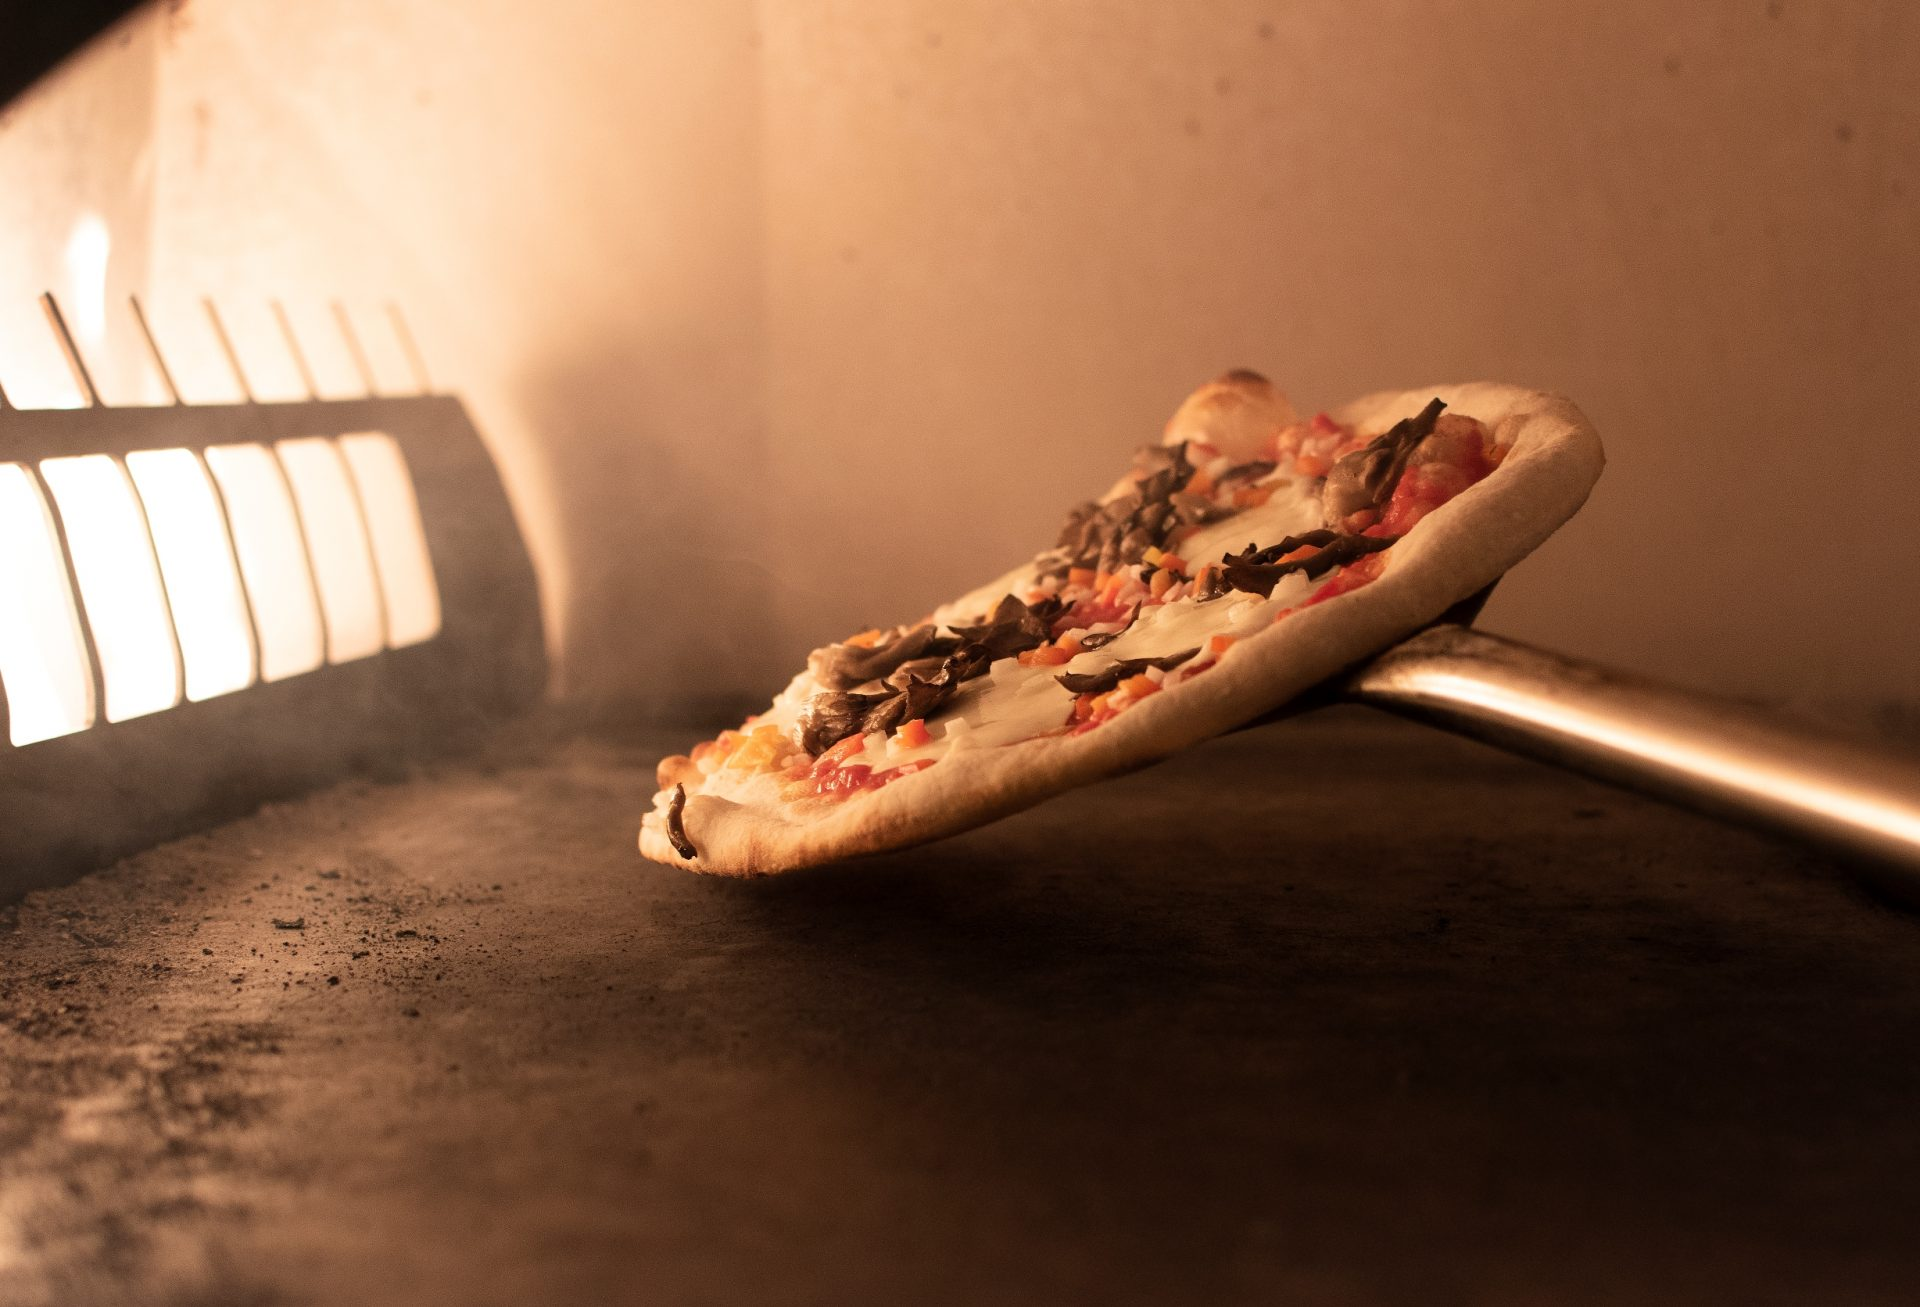 Close up of hand-crafted pizza being placed near burners inside oven